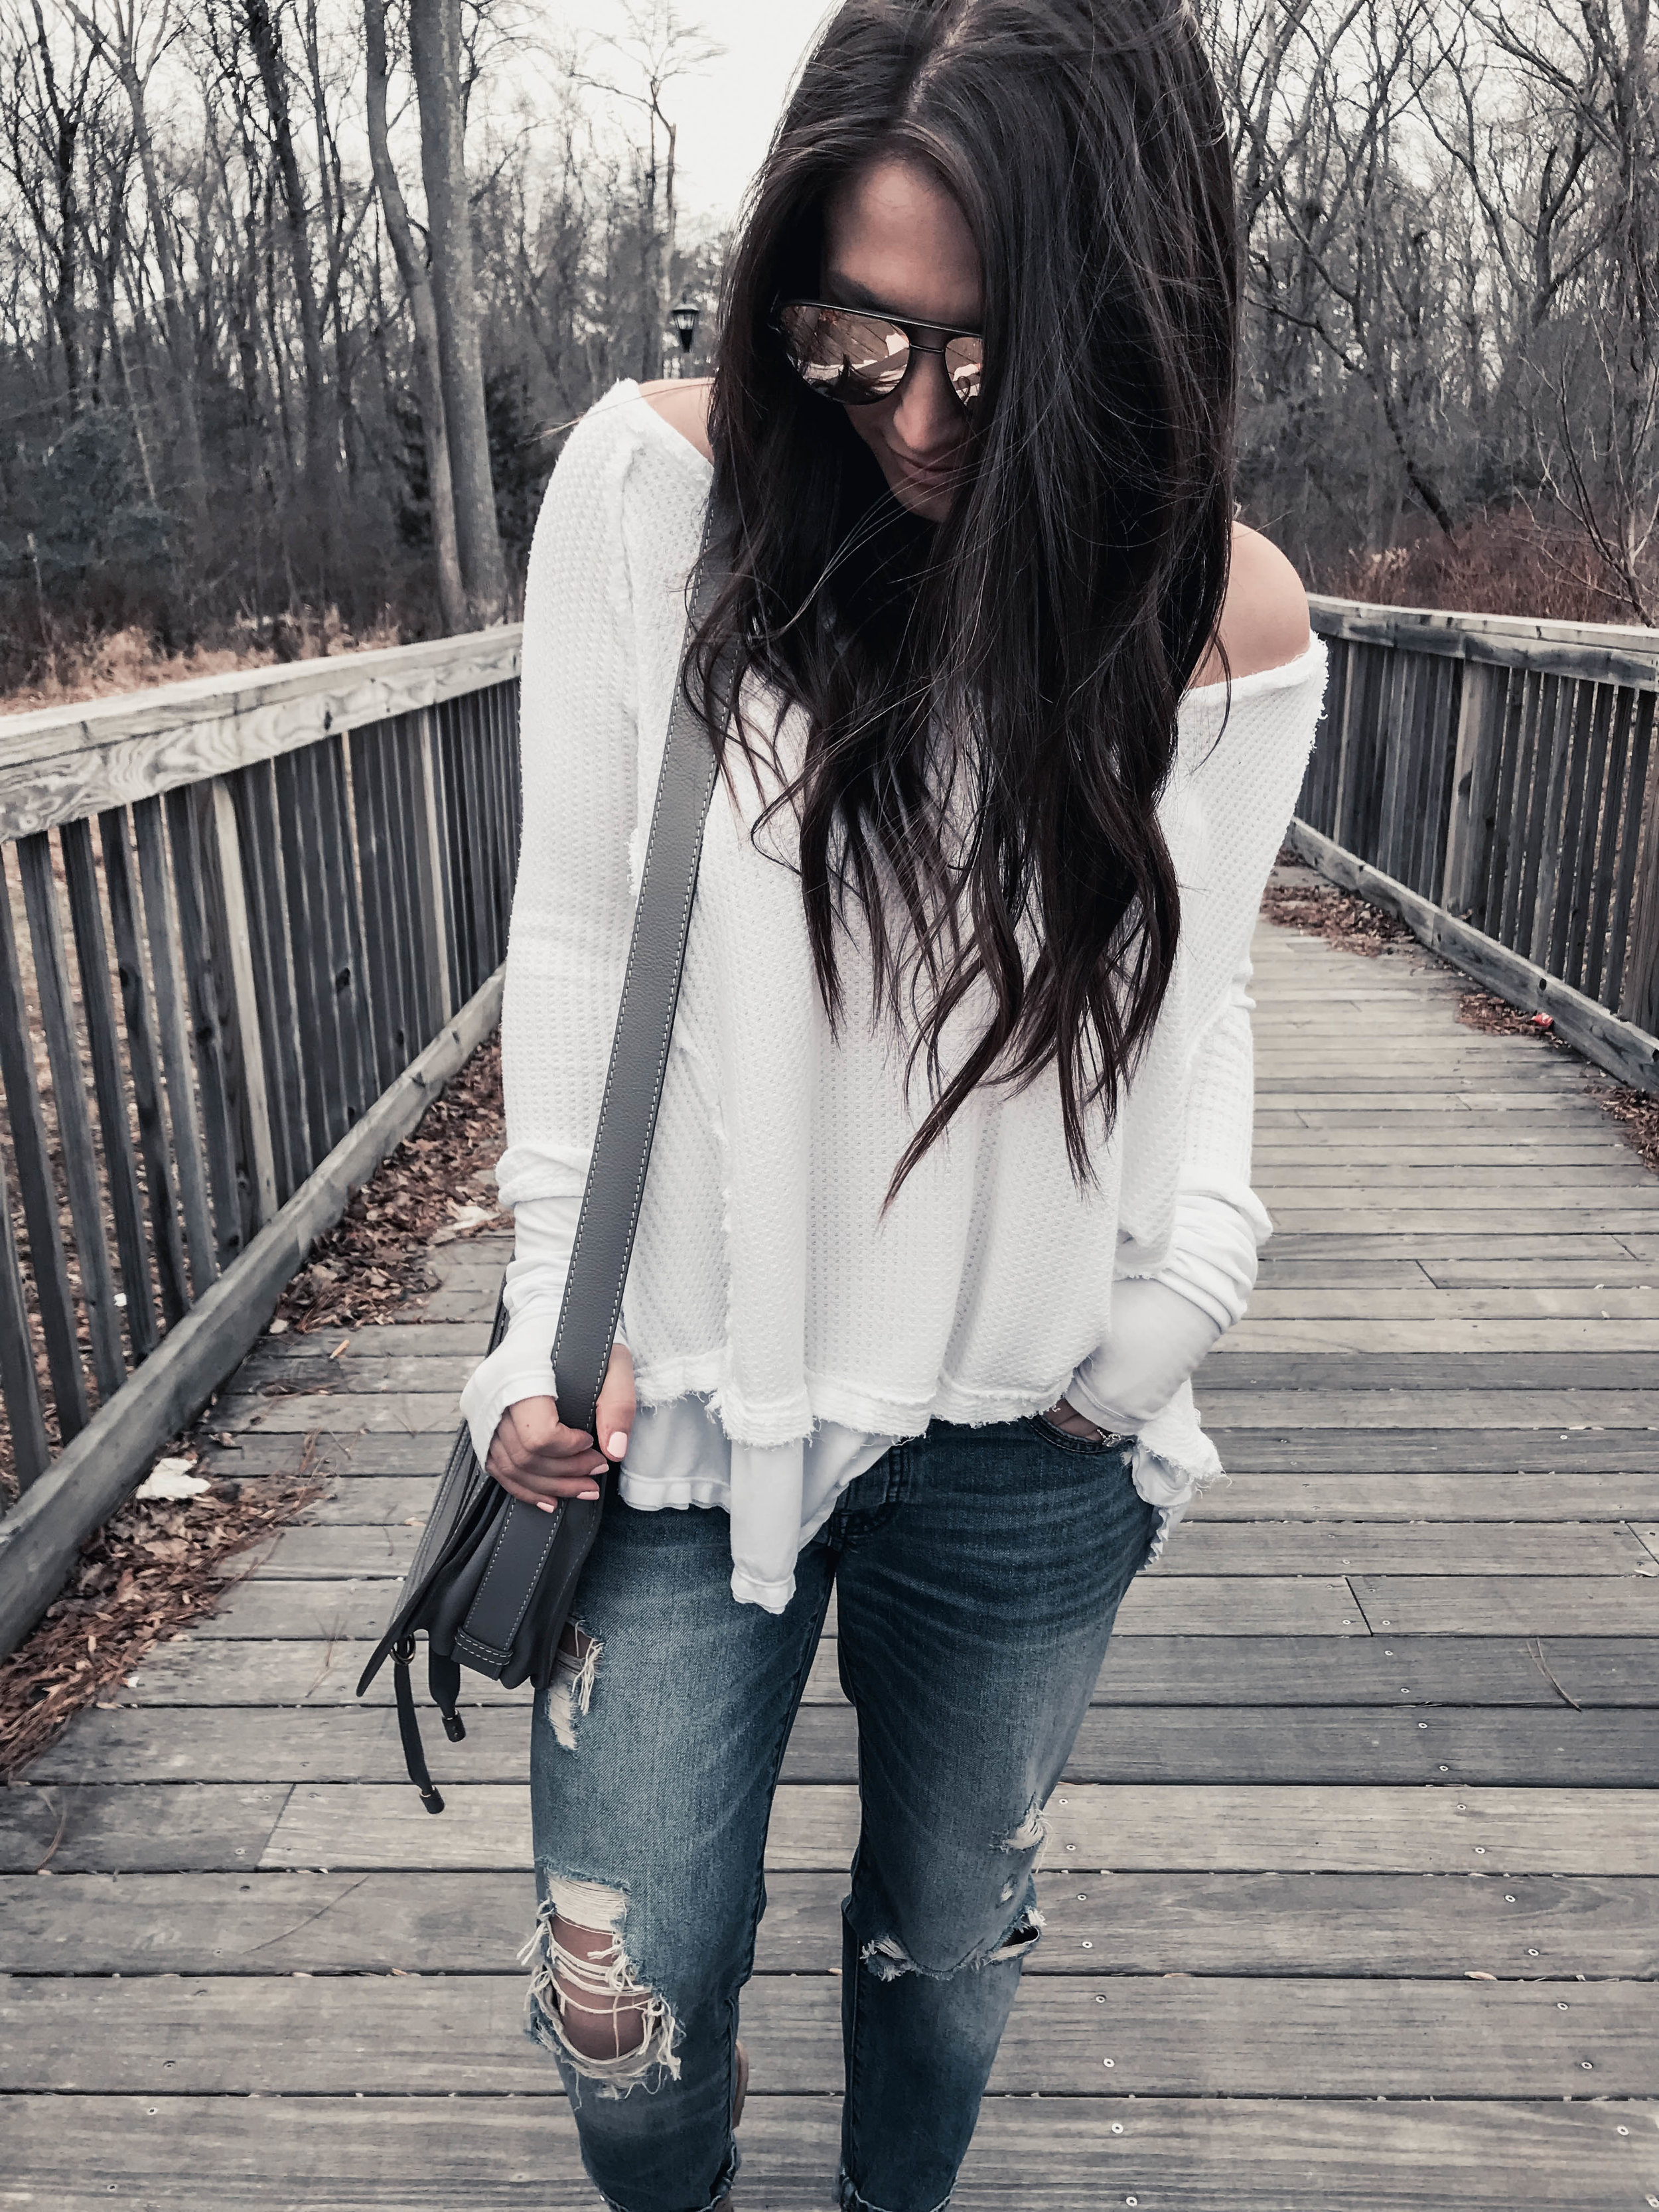 Nordstrom Winter Sale + Instagram Round Up | Pine Barren Beauty | white thermal, distressed denim, Chloe bag, spring outfit idea, comfy outfit idea